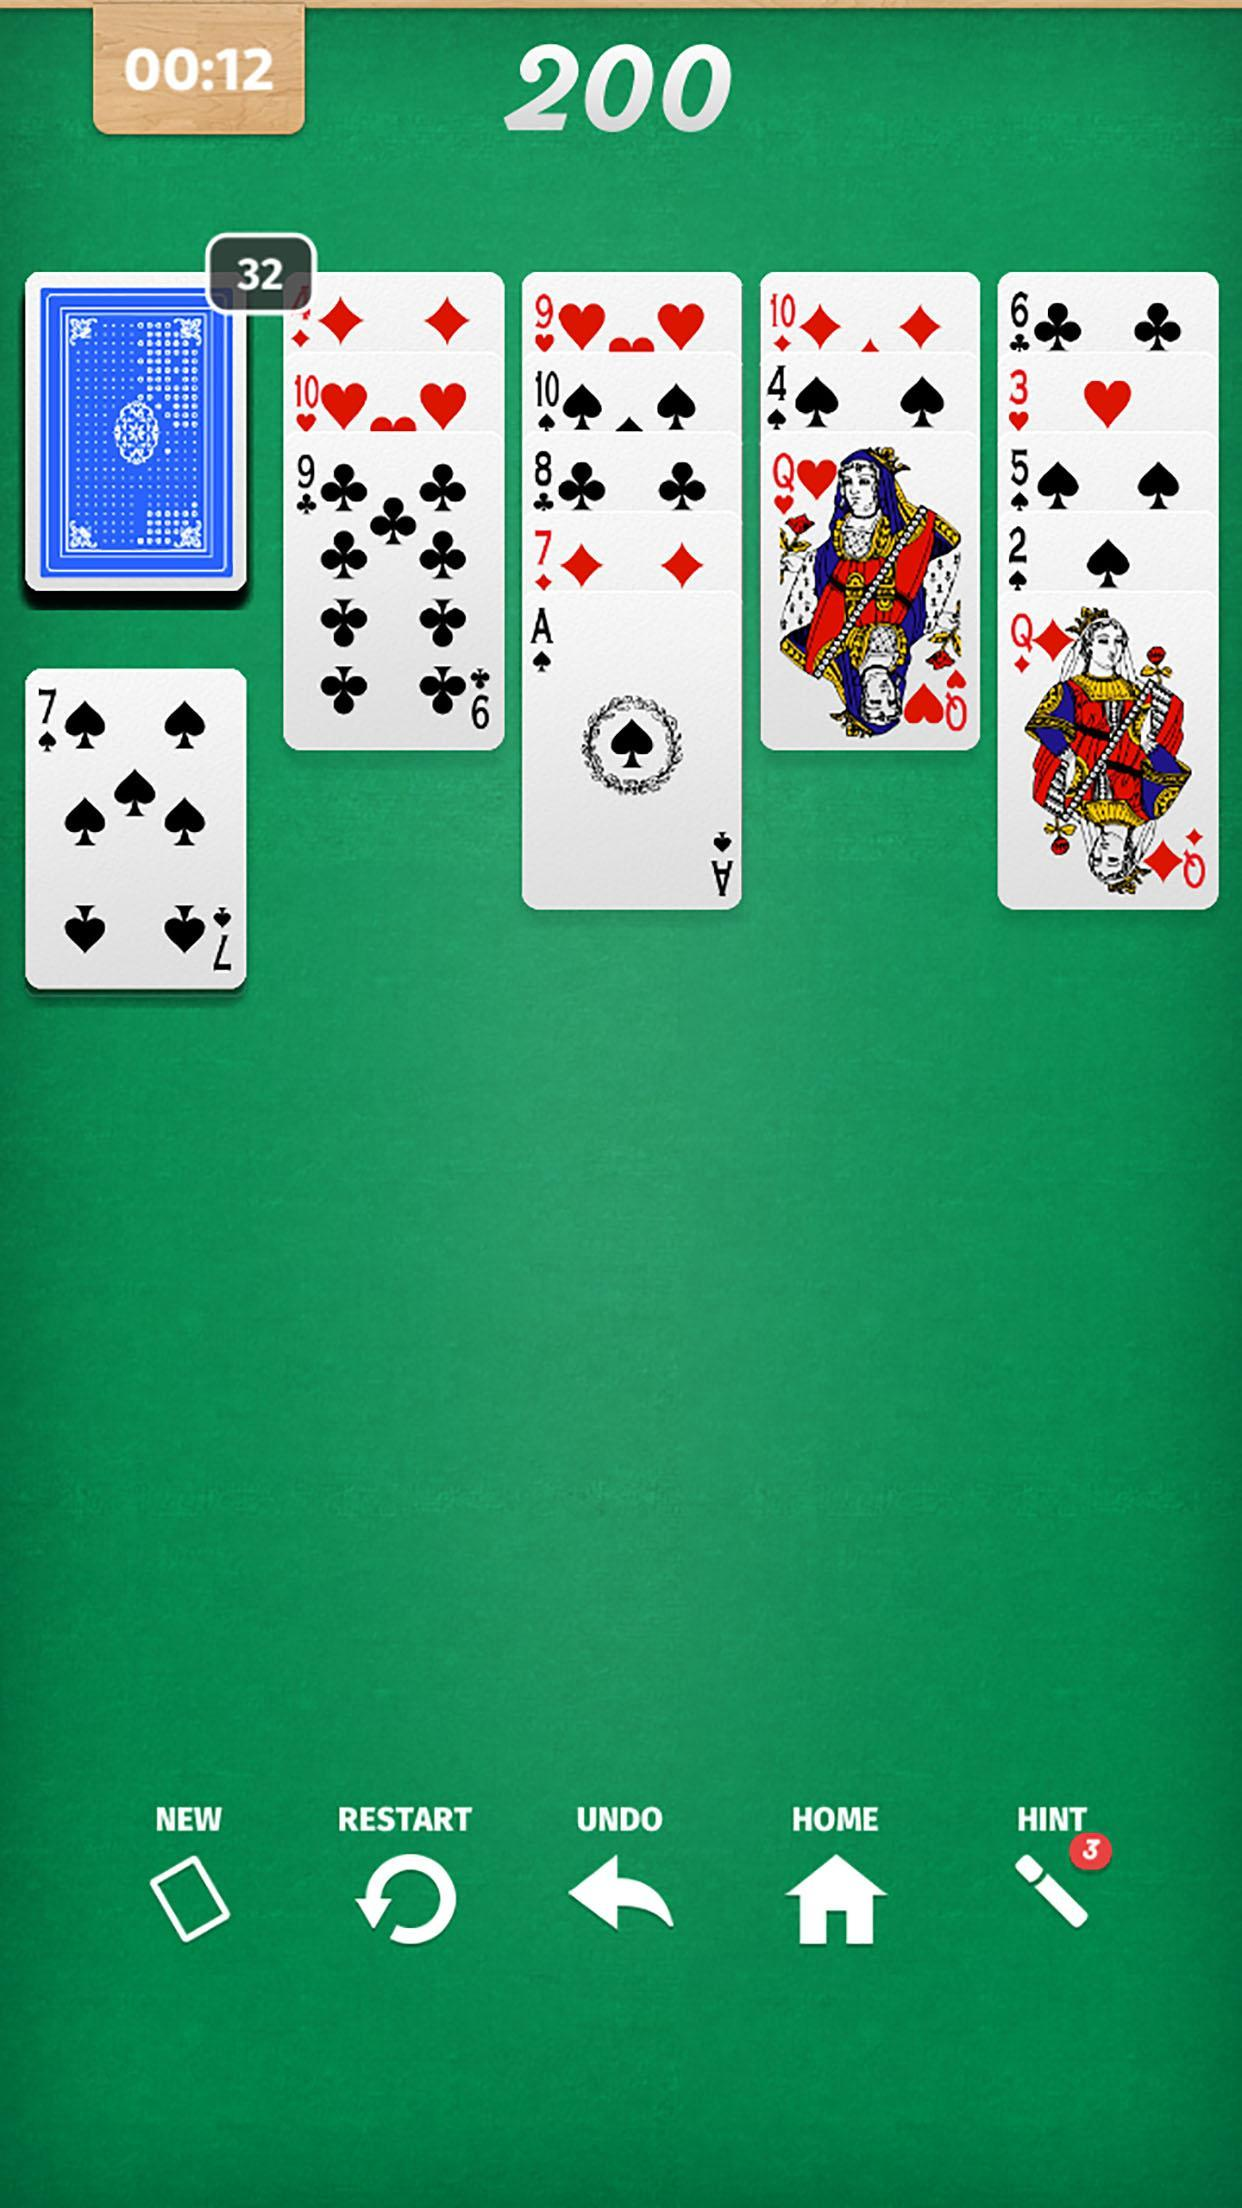 Aces Up -  Easthaven Solitaire game 2.0.0 Screenshot 2